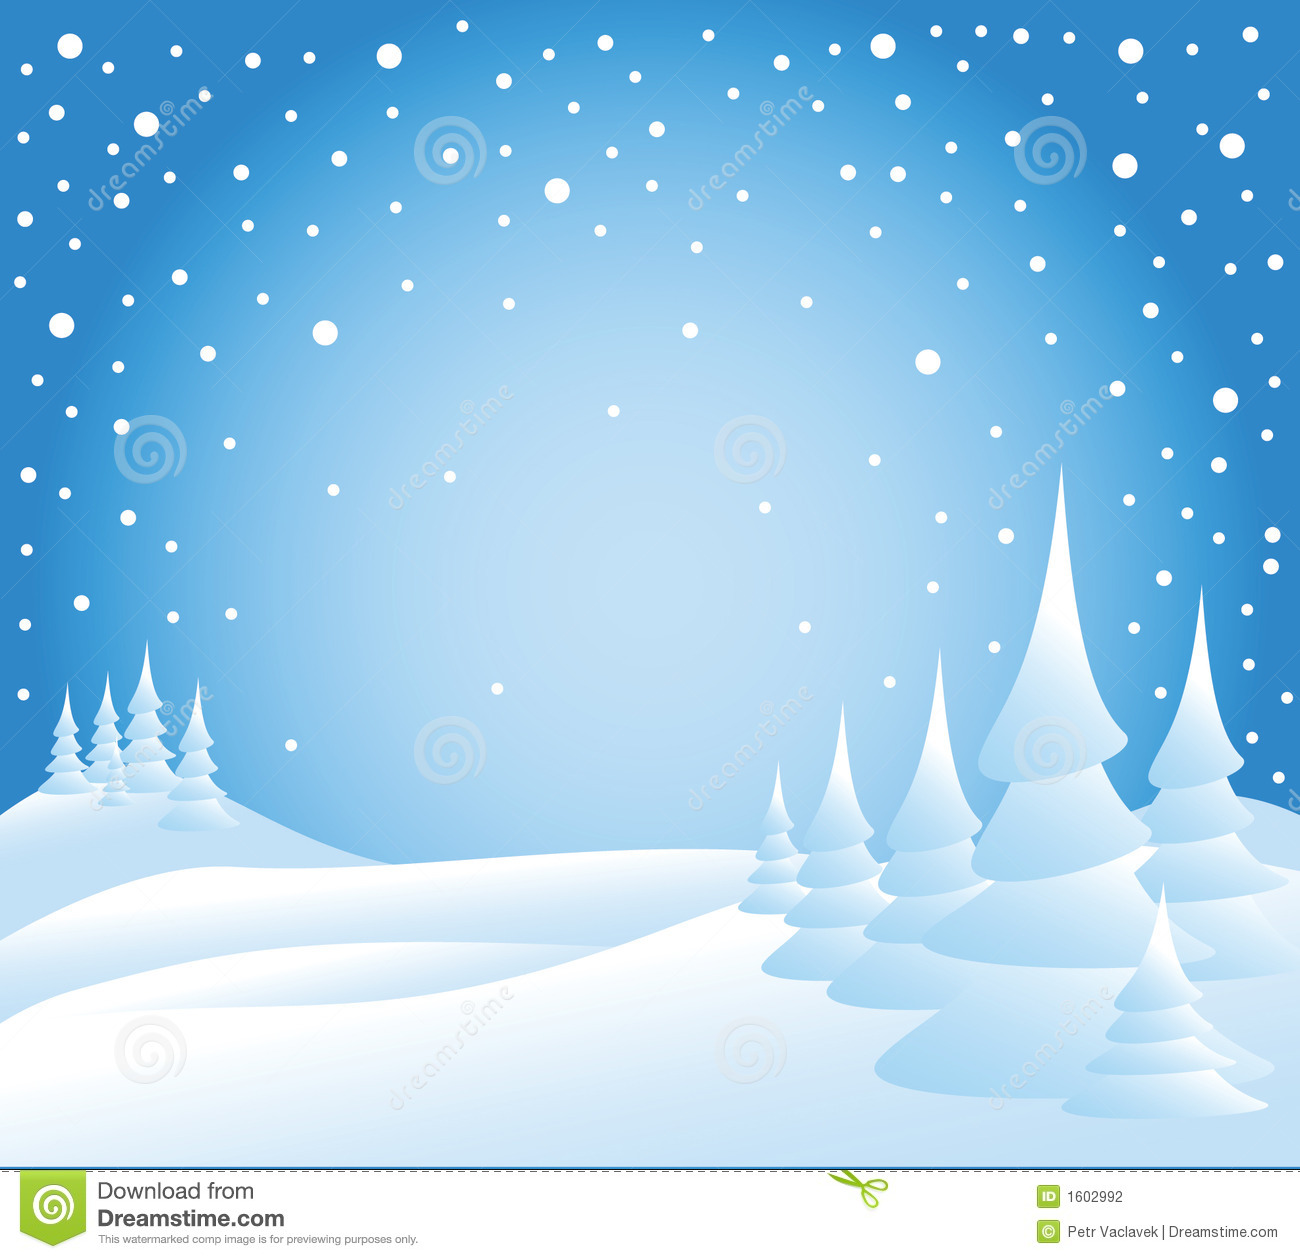 Animated Snow Falling Clipart Animated Snow Falling